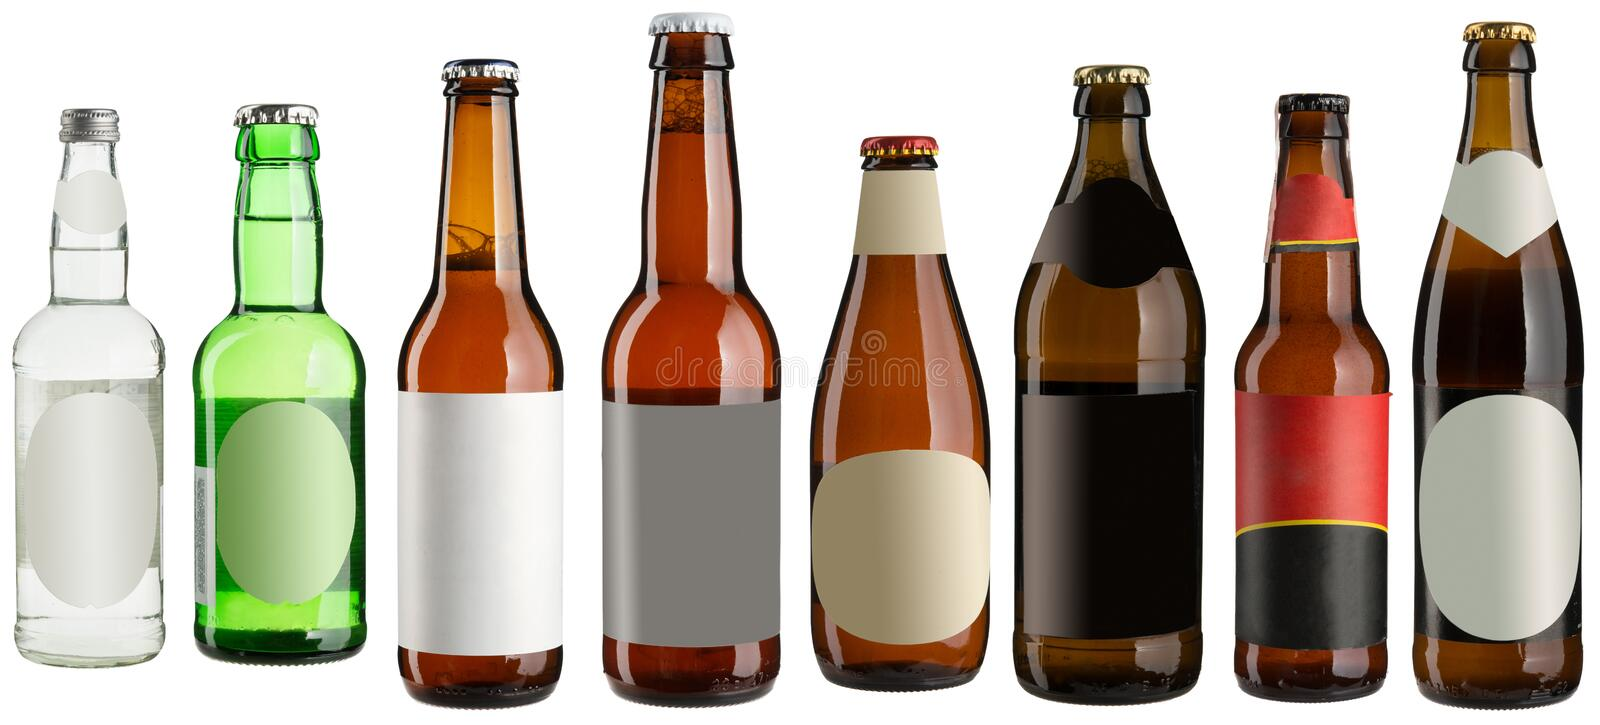 Beer bottles isolated on white stock photos